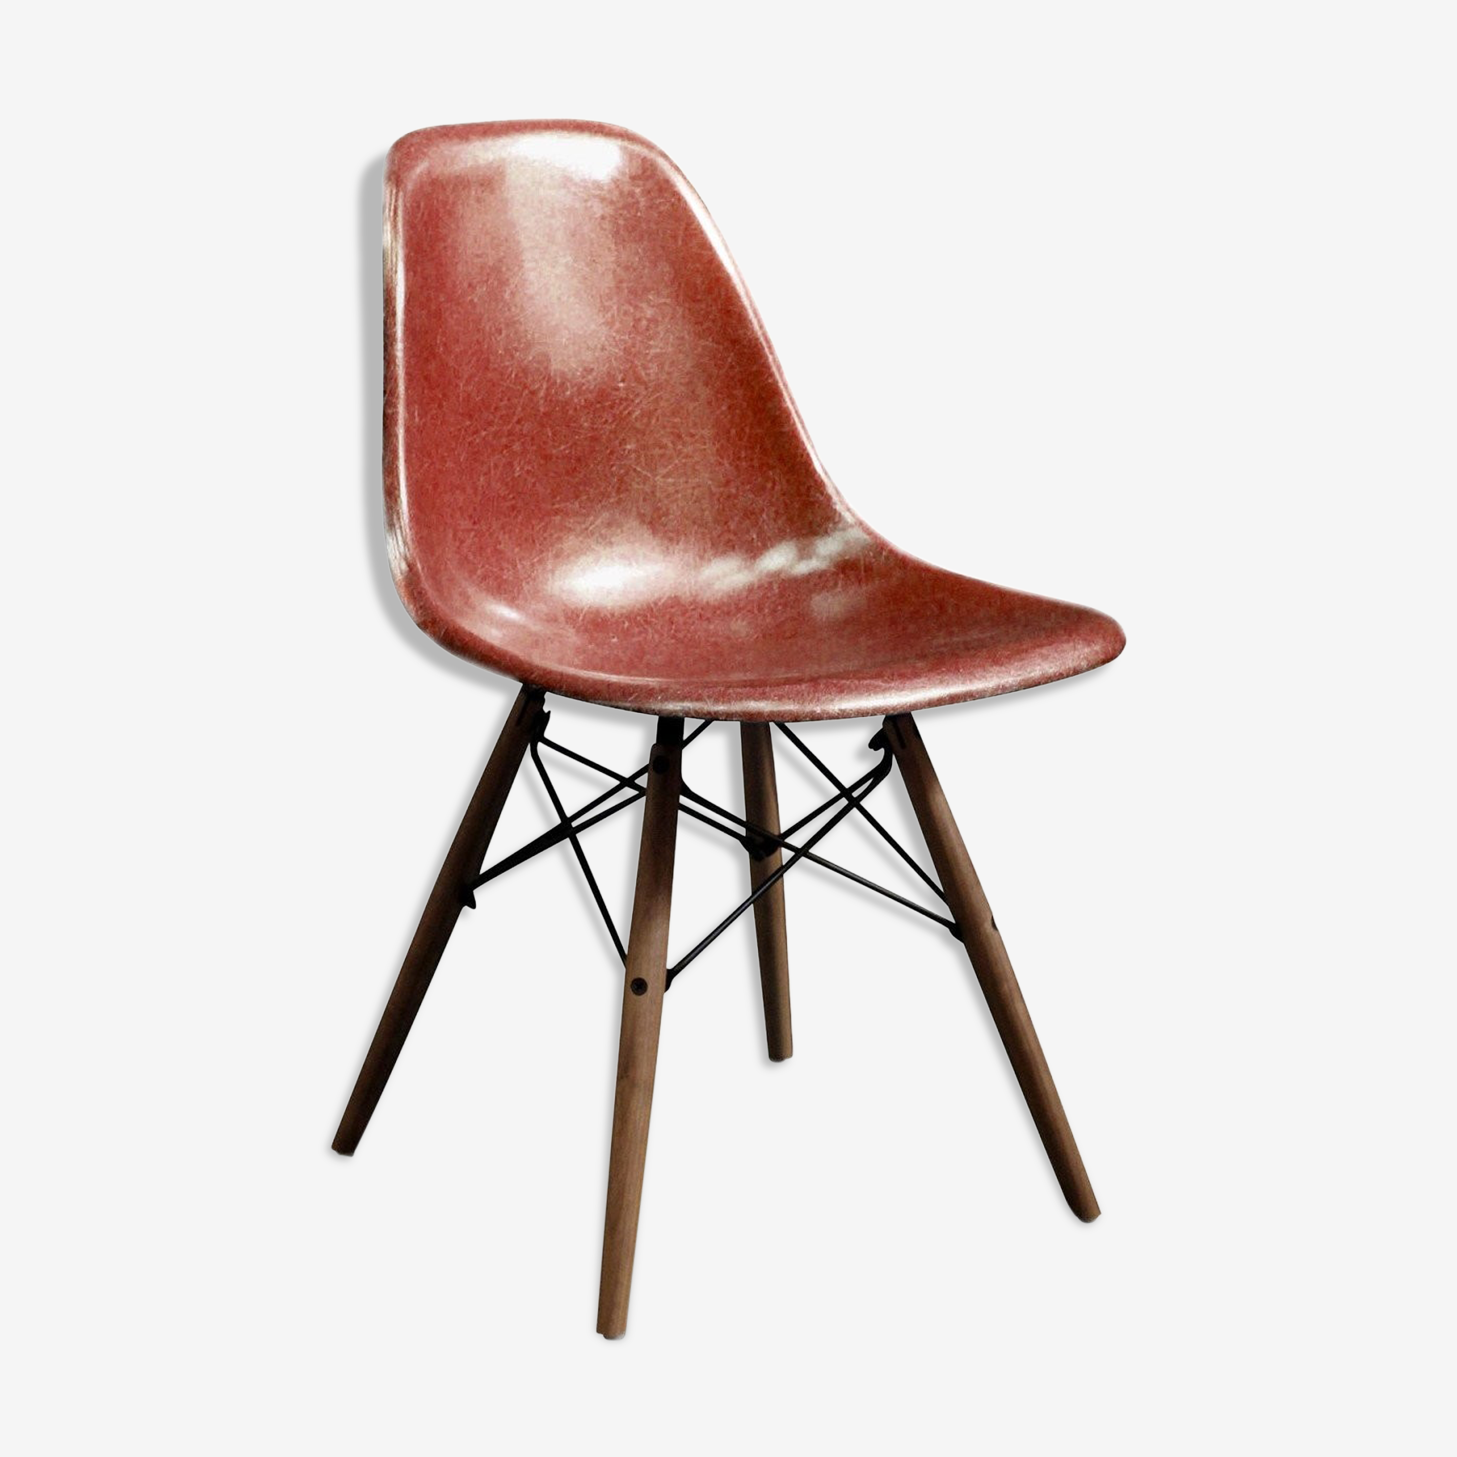 "Chair Eames DSW ""terracotta"" Herman Miller 1970 edition"